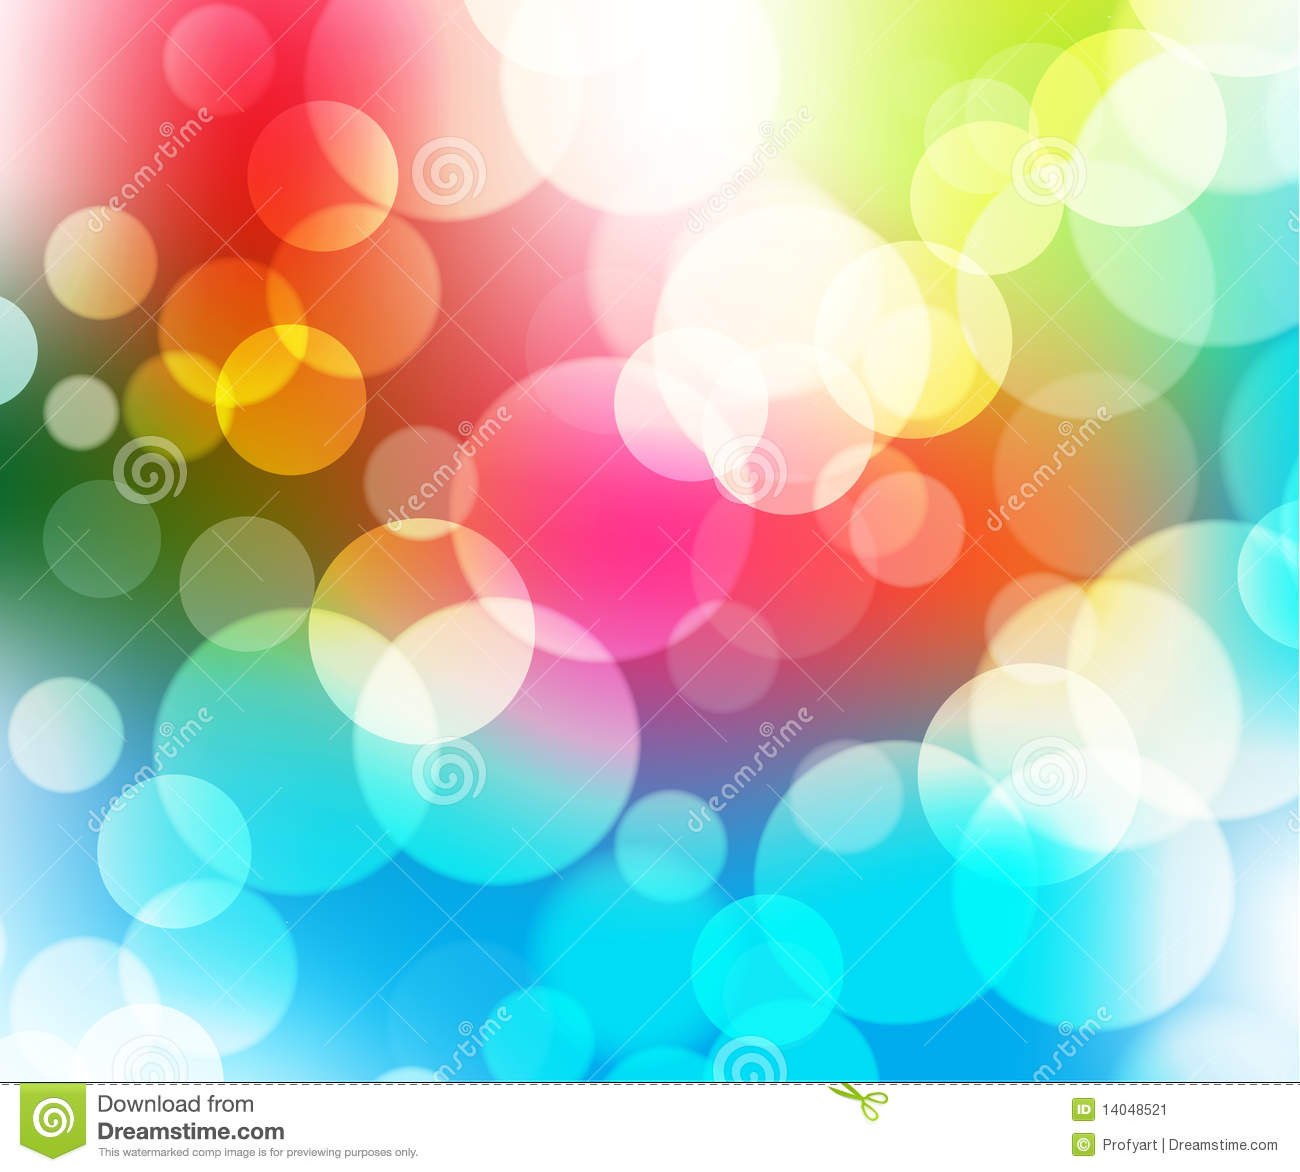 Abstract vector background with circles 2